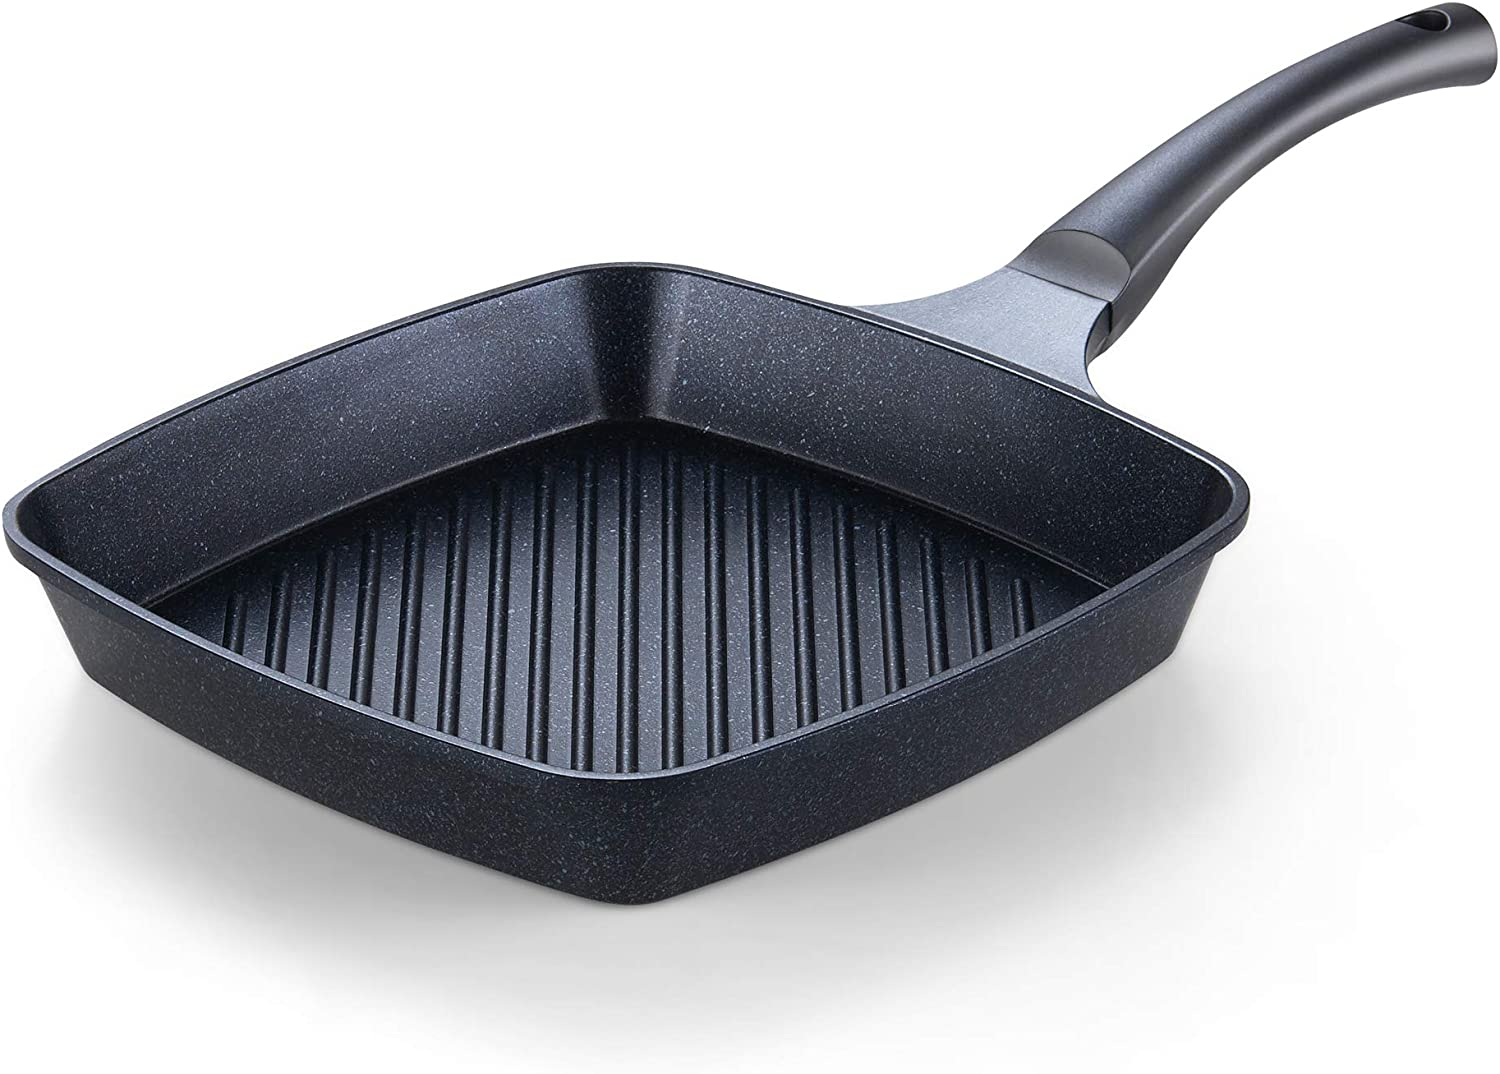 Cook N Home 2686 Nonstick Marble Coating Deep Square Grill Pan 11 x 11 Black